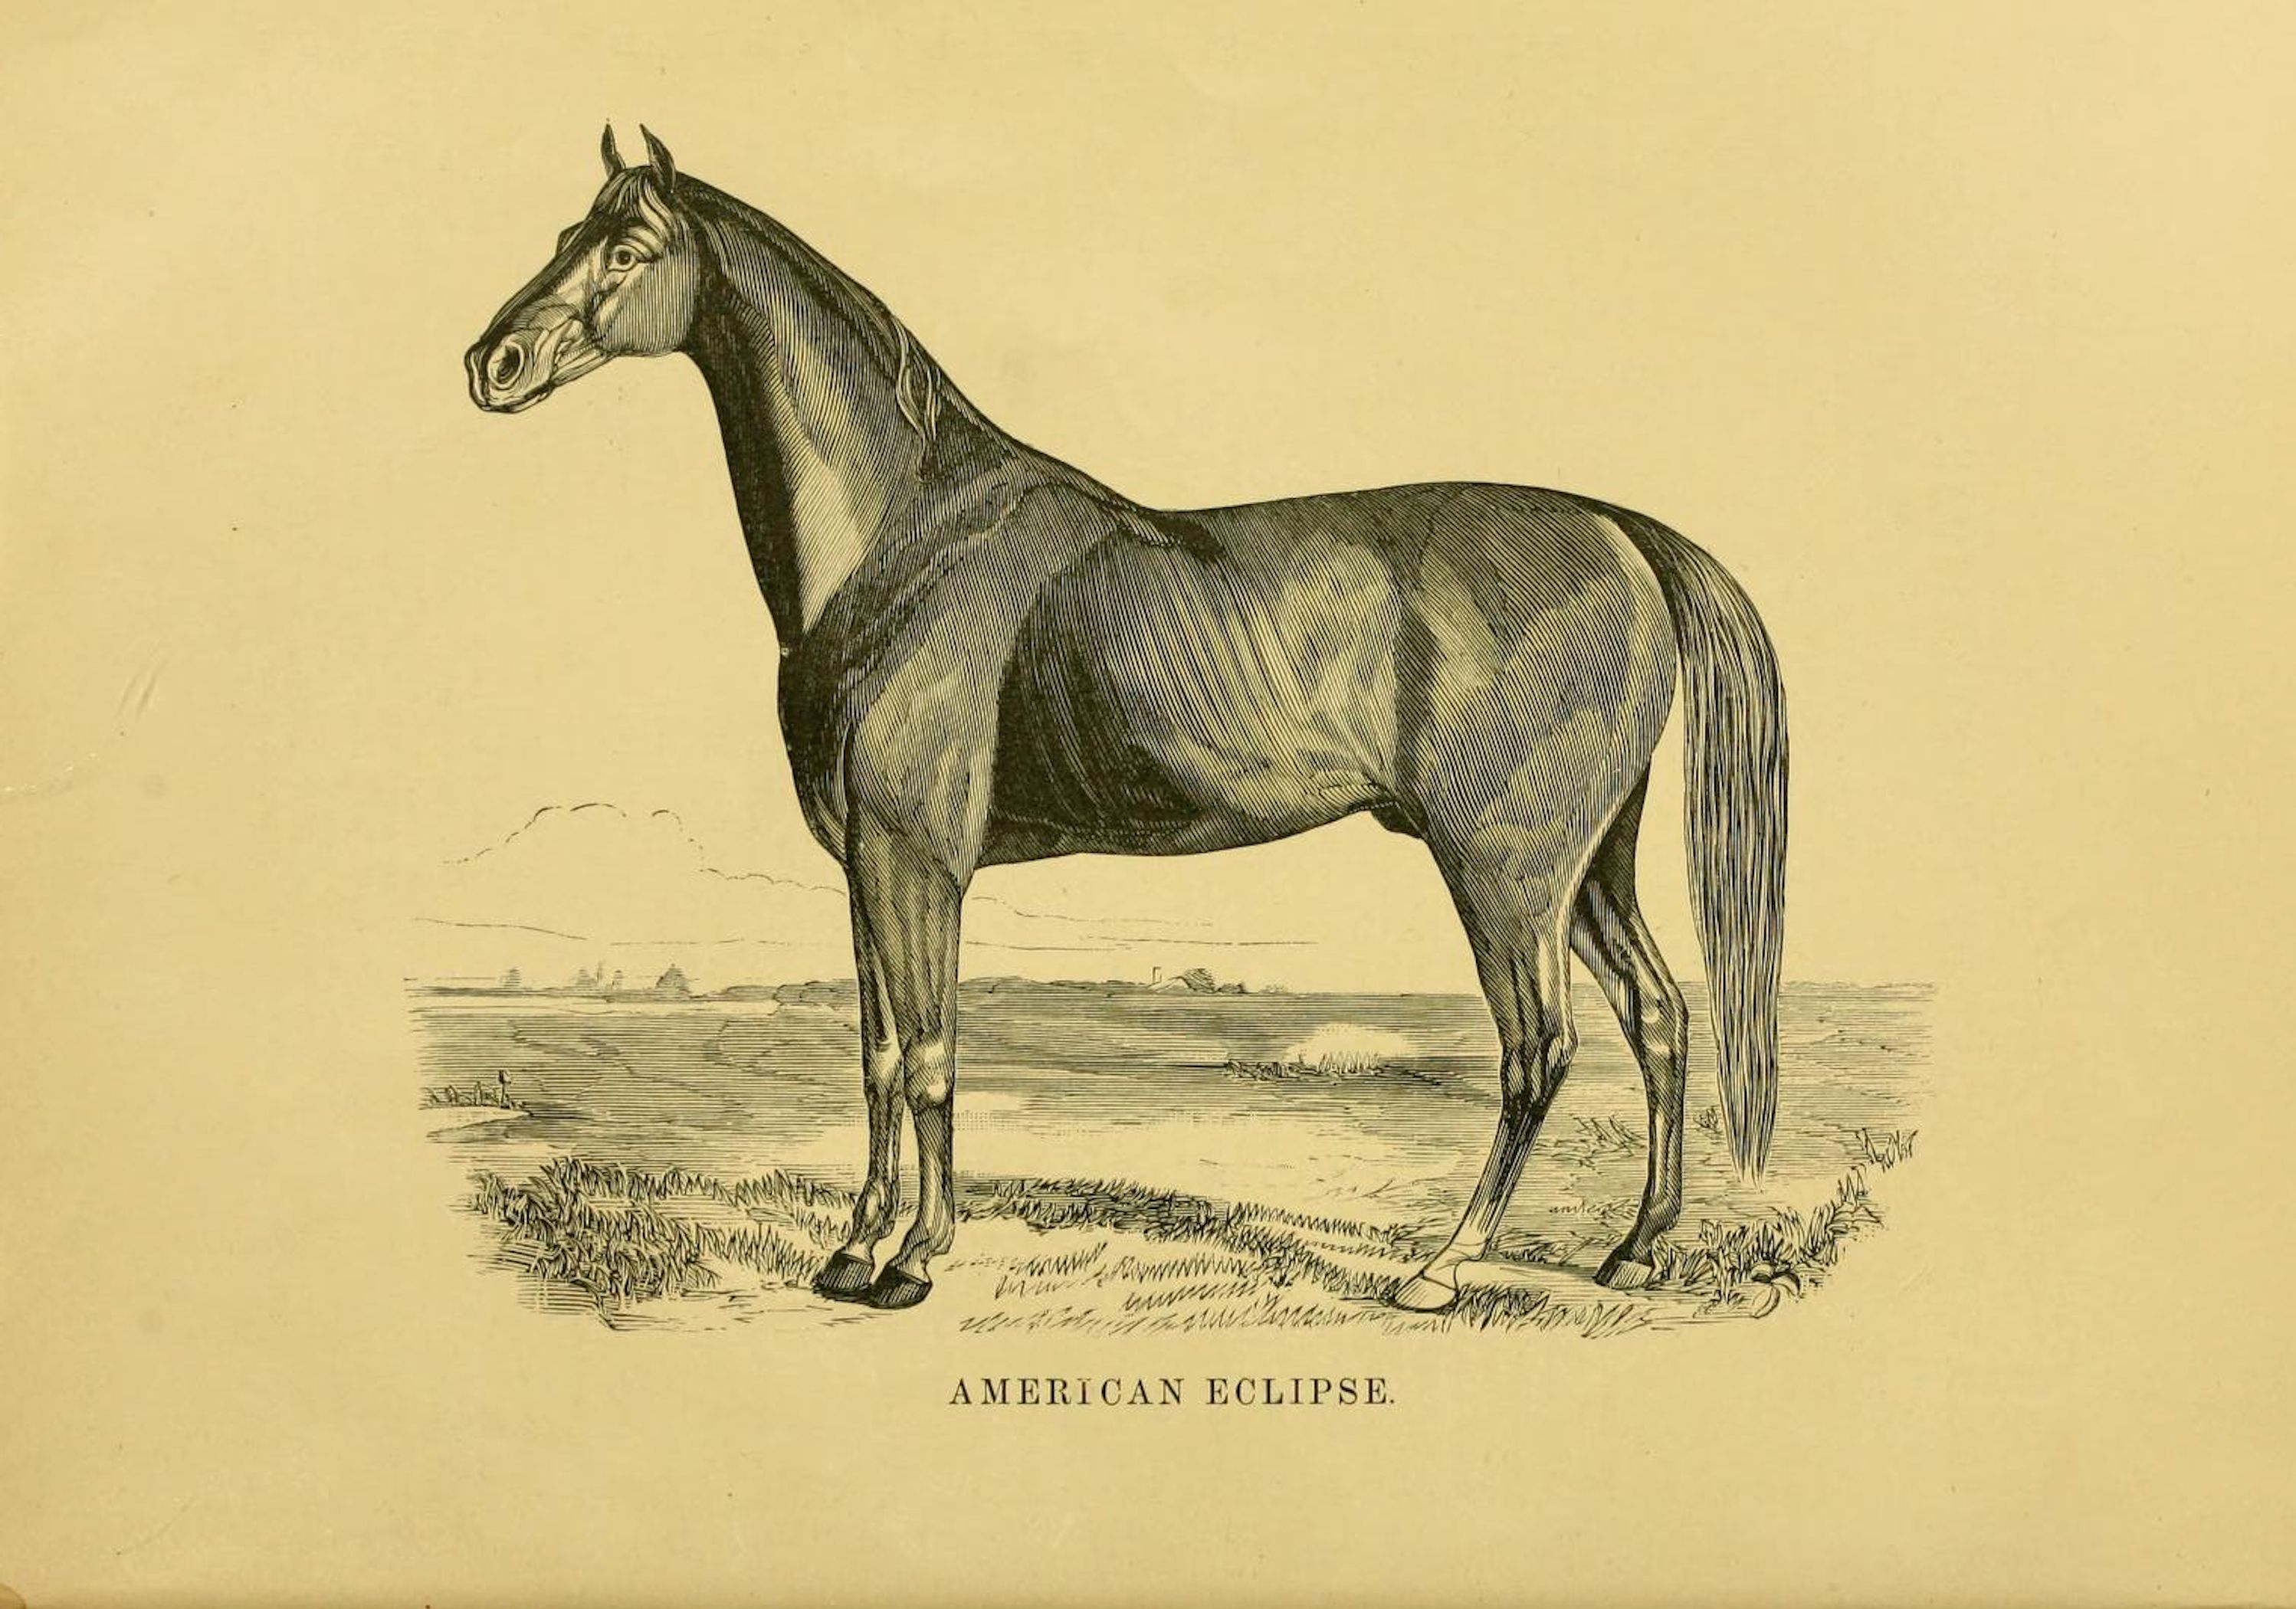 """Illustration of American Eclipse from """"Famous American Racehorses,"""" 1877 (Museum Collection)"""